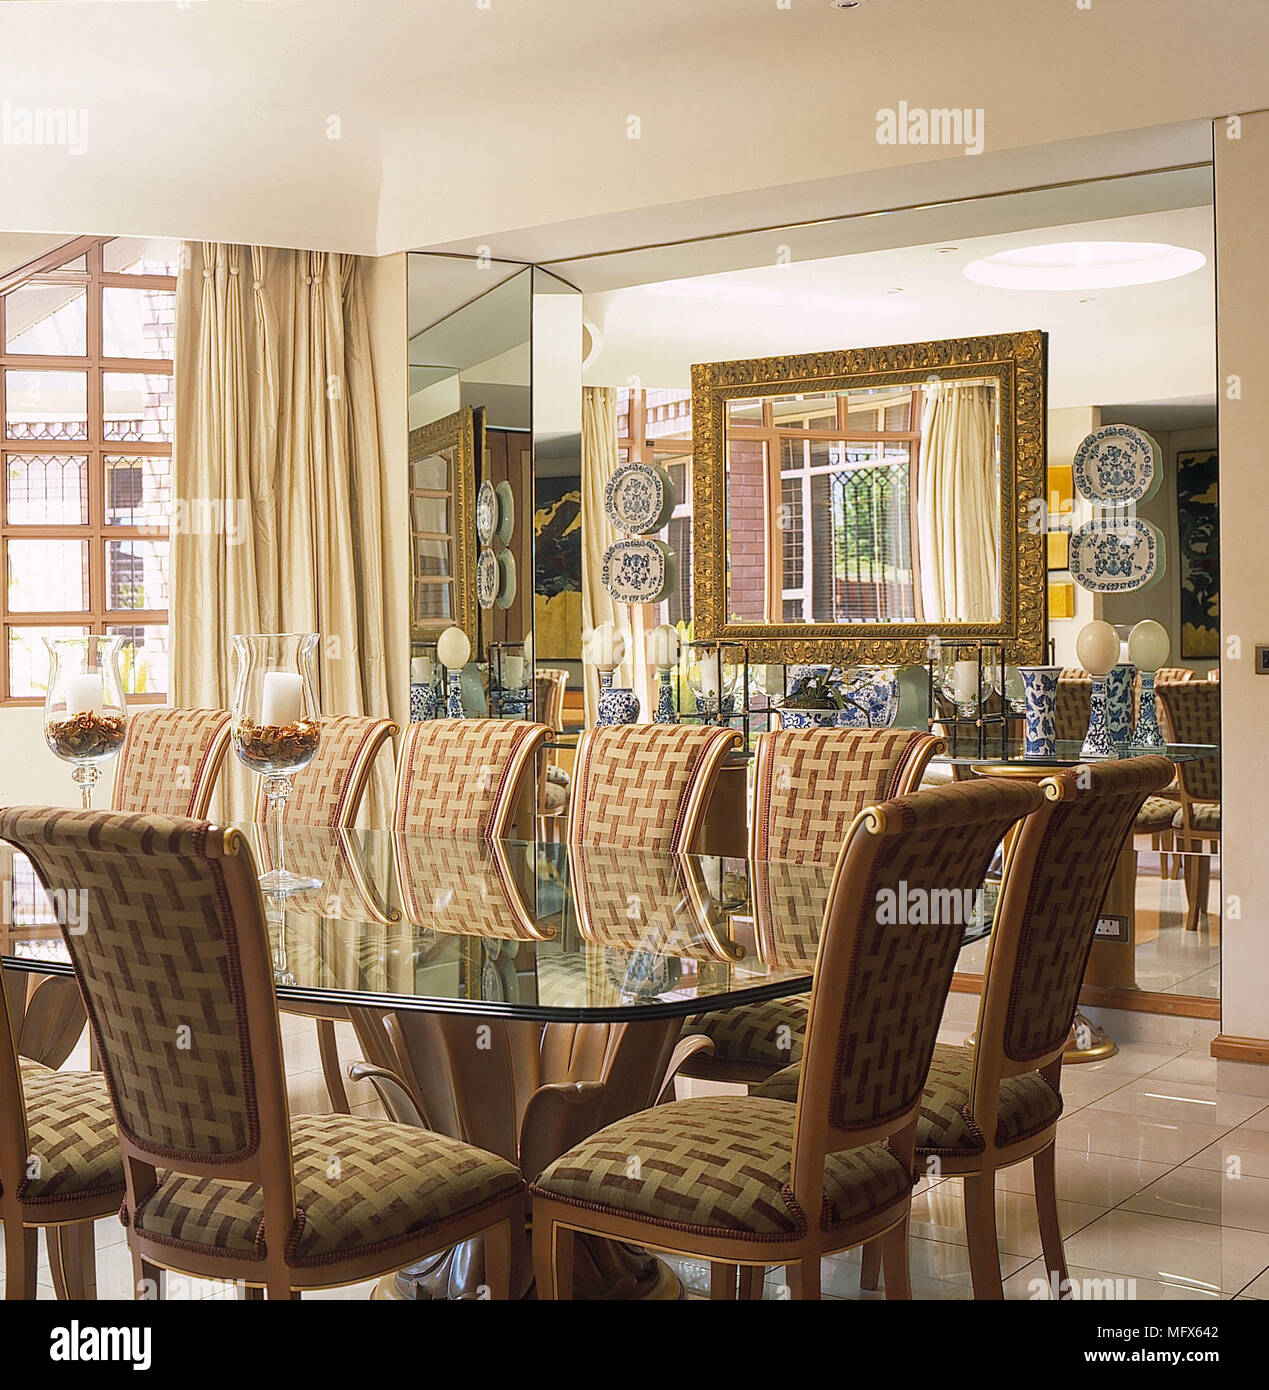 Dining Room White Walls Tiled Stone Floor Mirror Wall Glass Table Brown  Beige Covered Chairs Cream Curtains Interiors Rooms Gold Mirror Blue White  Chi